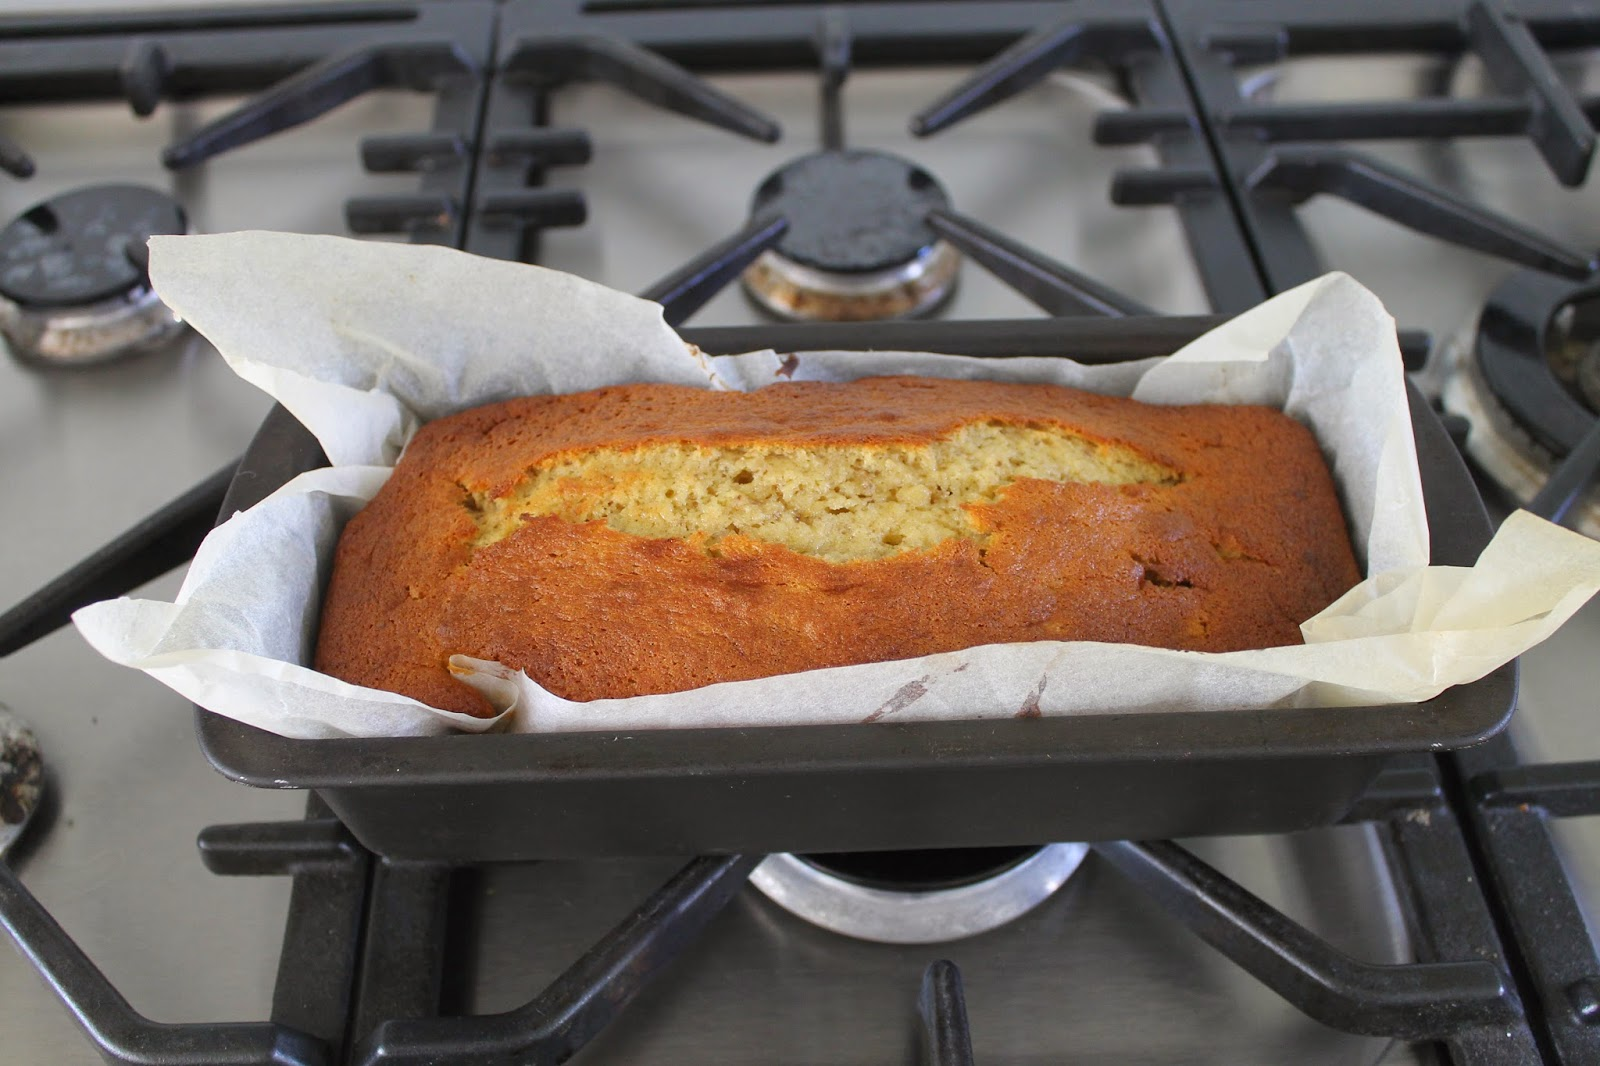 How To: Make A Banana Cake